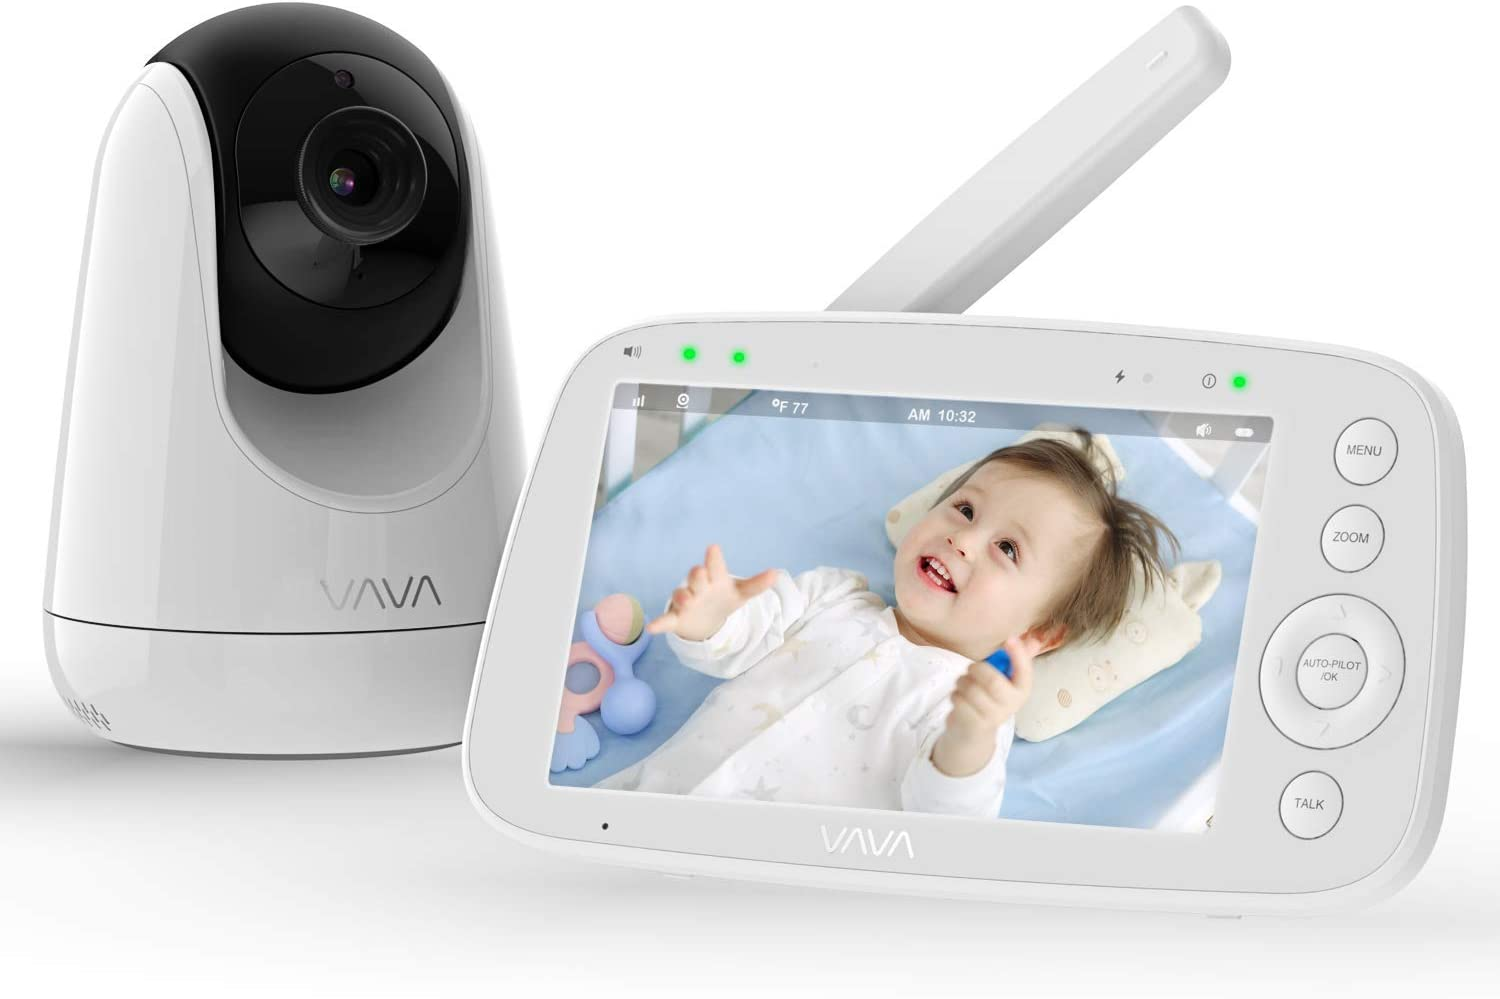 VAVA 5inches 720P HD Display Video Baby Monitor with Camera